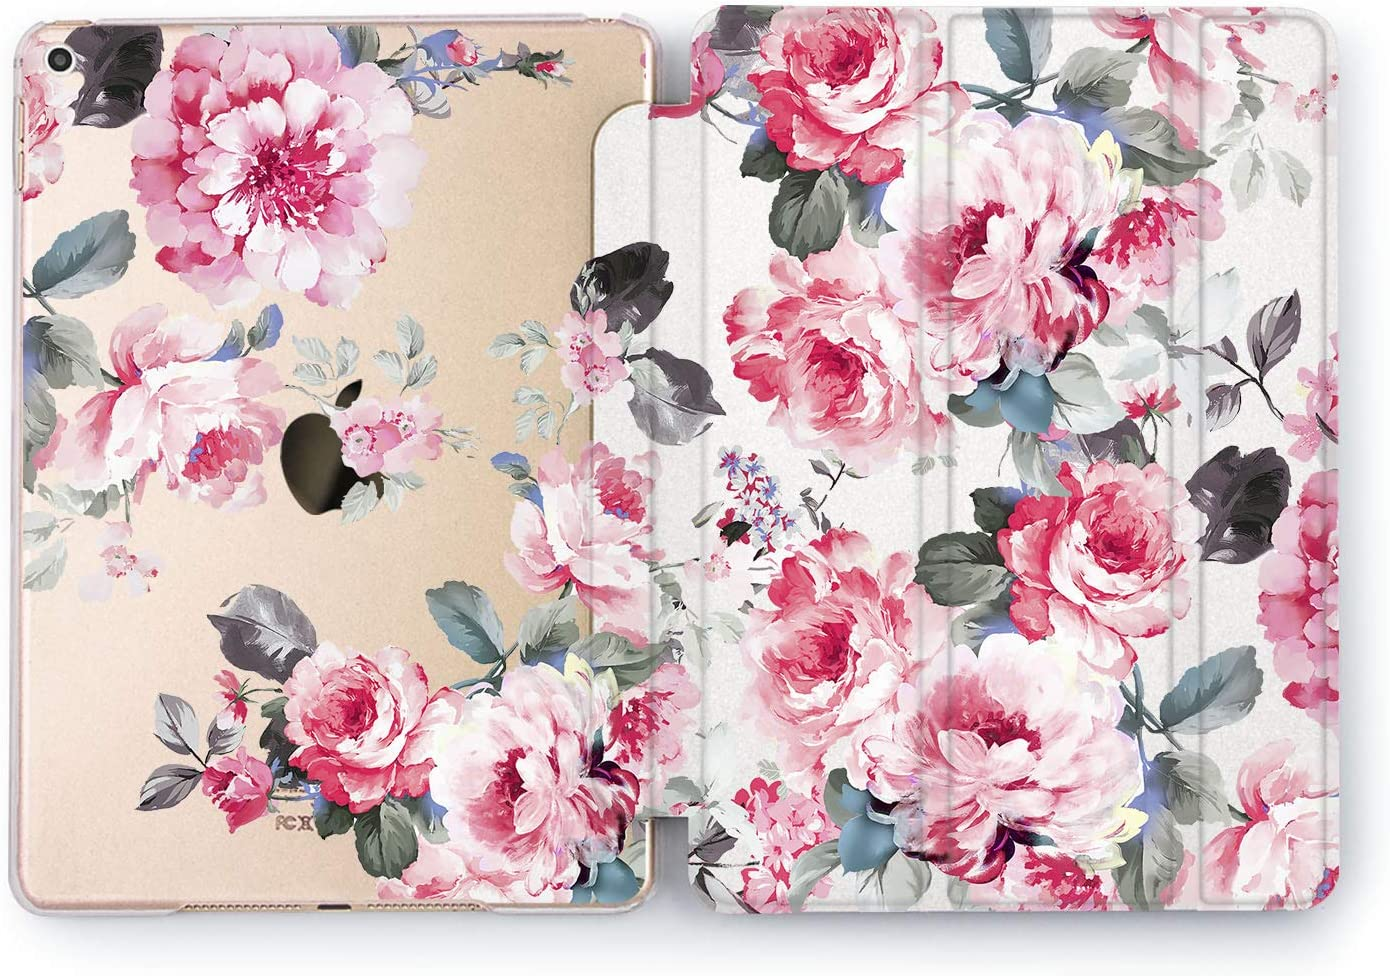 Wonder Wild Case Compatible with Apple iPad Peonies Cover Pro 9.7 inch Flowers Mini 1 2 3 4 Red Colorful Floral Air 2 10.5 12.9 Painted Cute Plastic Stand 5th 6th Generation 10.2 11 Bright